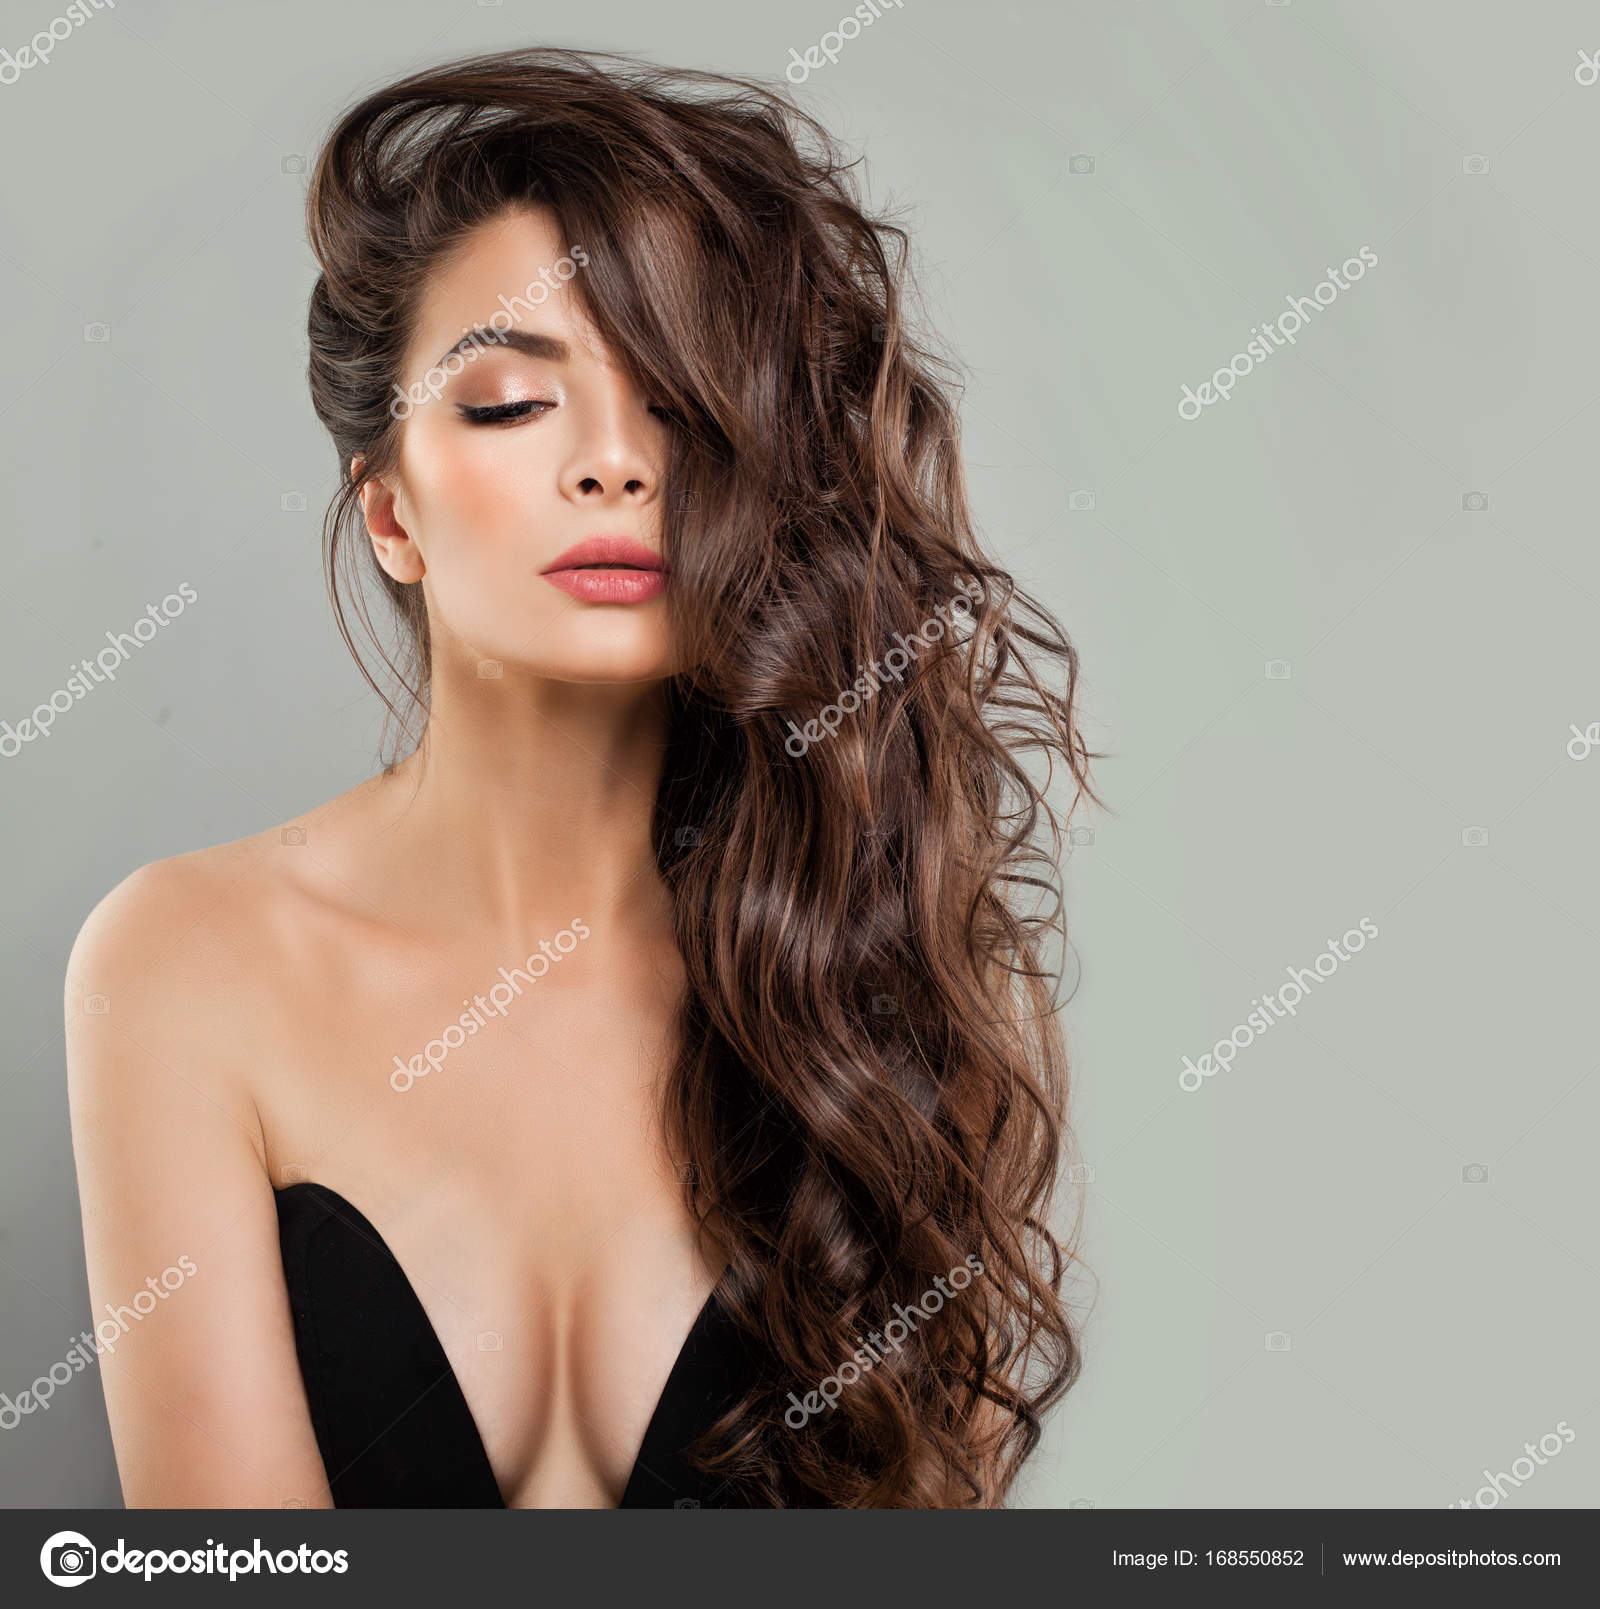 Alluring Woman Fashion Model In Black Bra On Banner Background Stock Photo C Millafedotova 168550852